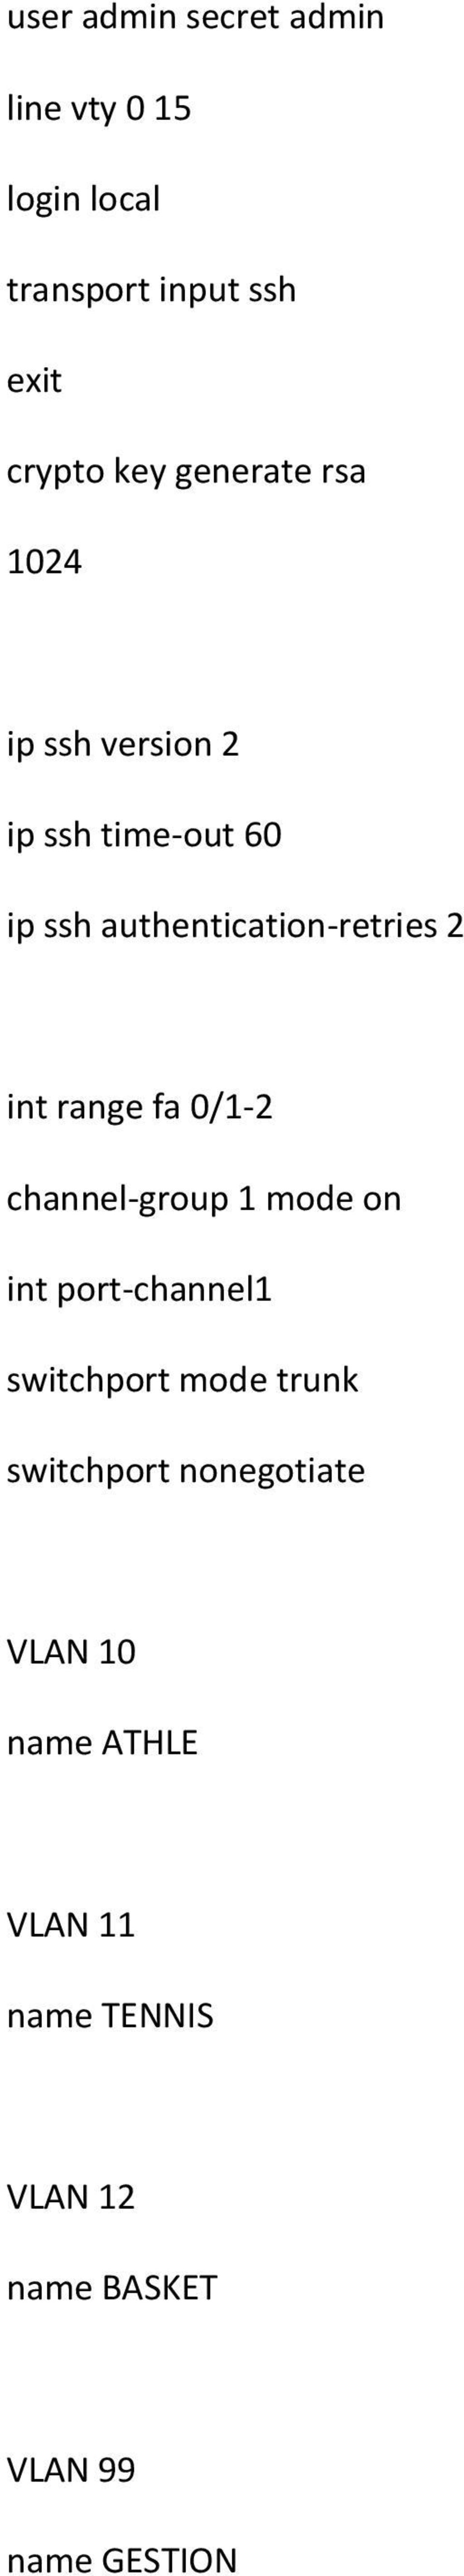 int range fa 0/1-2 channel-group 1 mode on int port-channel1 switchport mode trunk